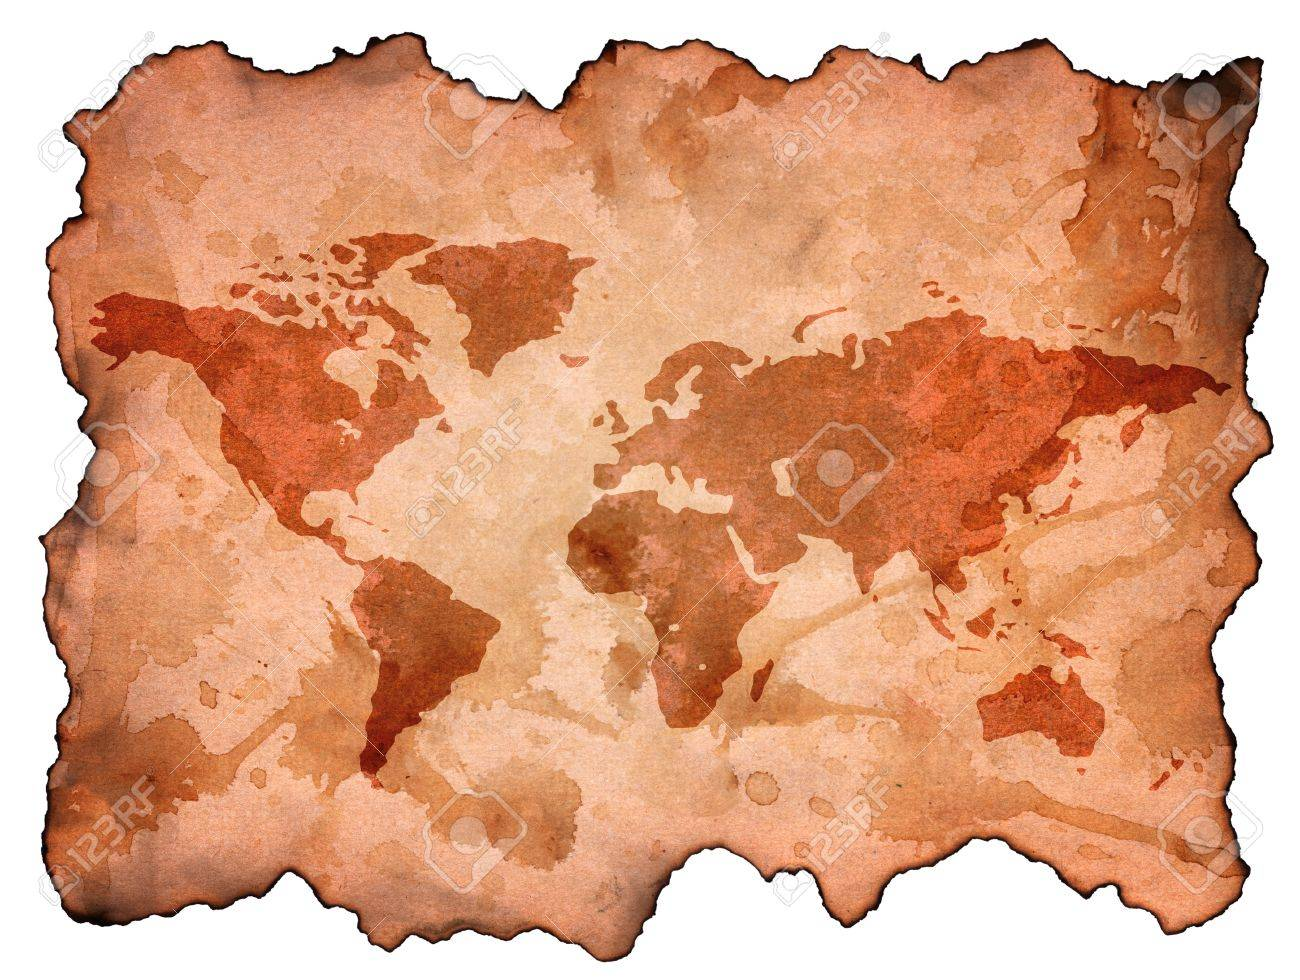 Brown burn old world map paper isolate on white background stock brown burn old world map paper isolate on white background stock photo 15386418 gumiabroncs Images